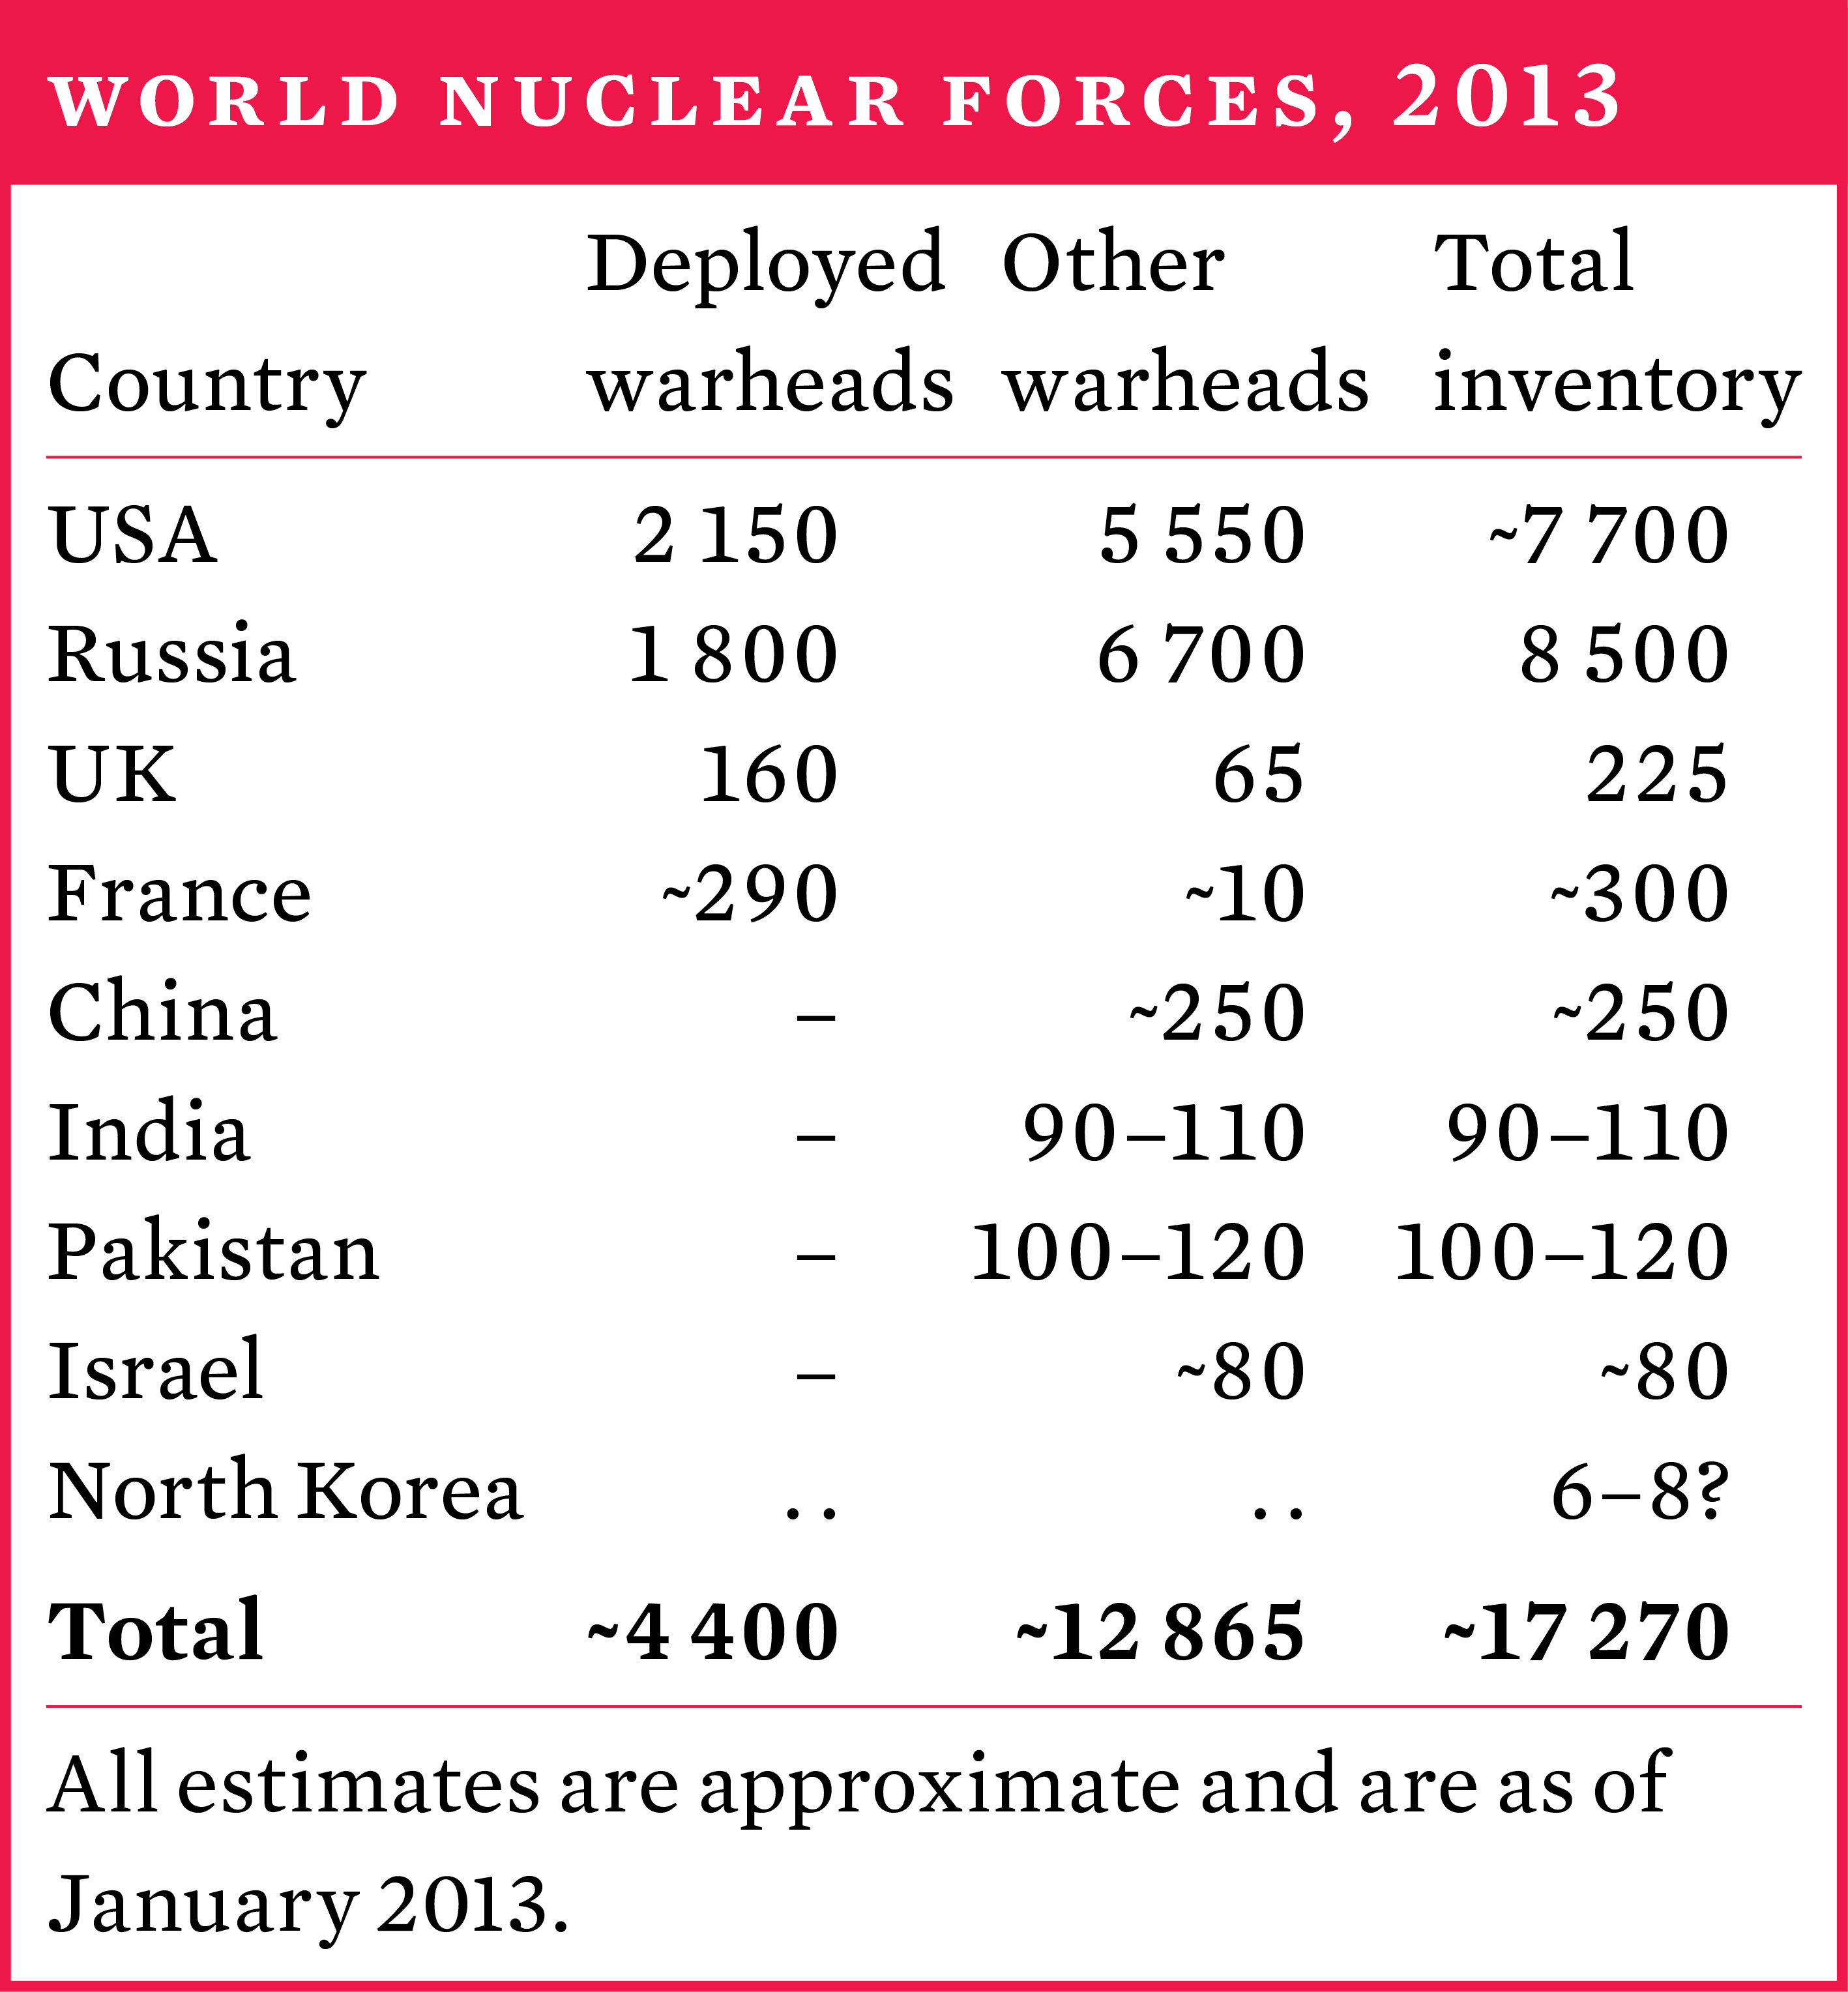 World nuclear forces, 2013